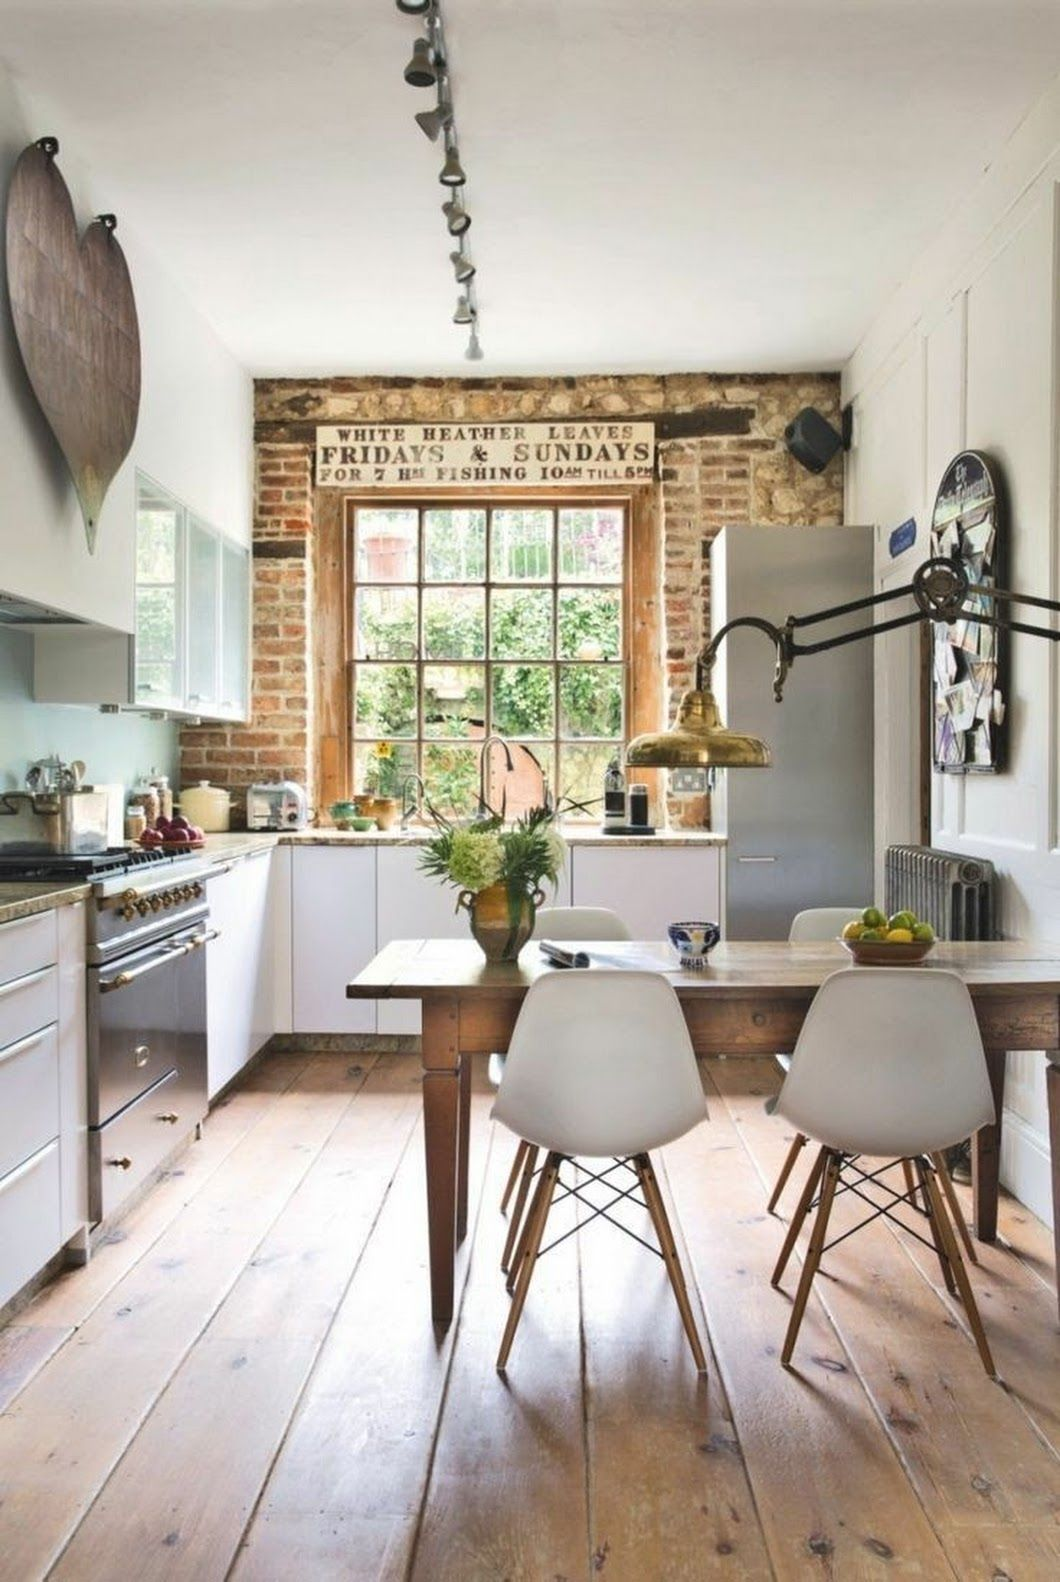 Iconic Eames Chairs In White In Kitchen Eameschair Kitchen Interior Kitchen Inspirations Home Kitchens